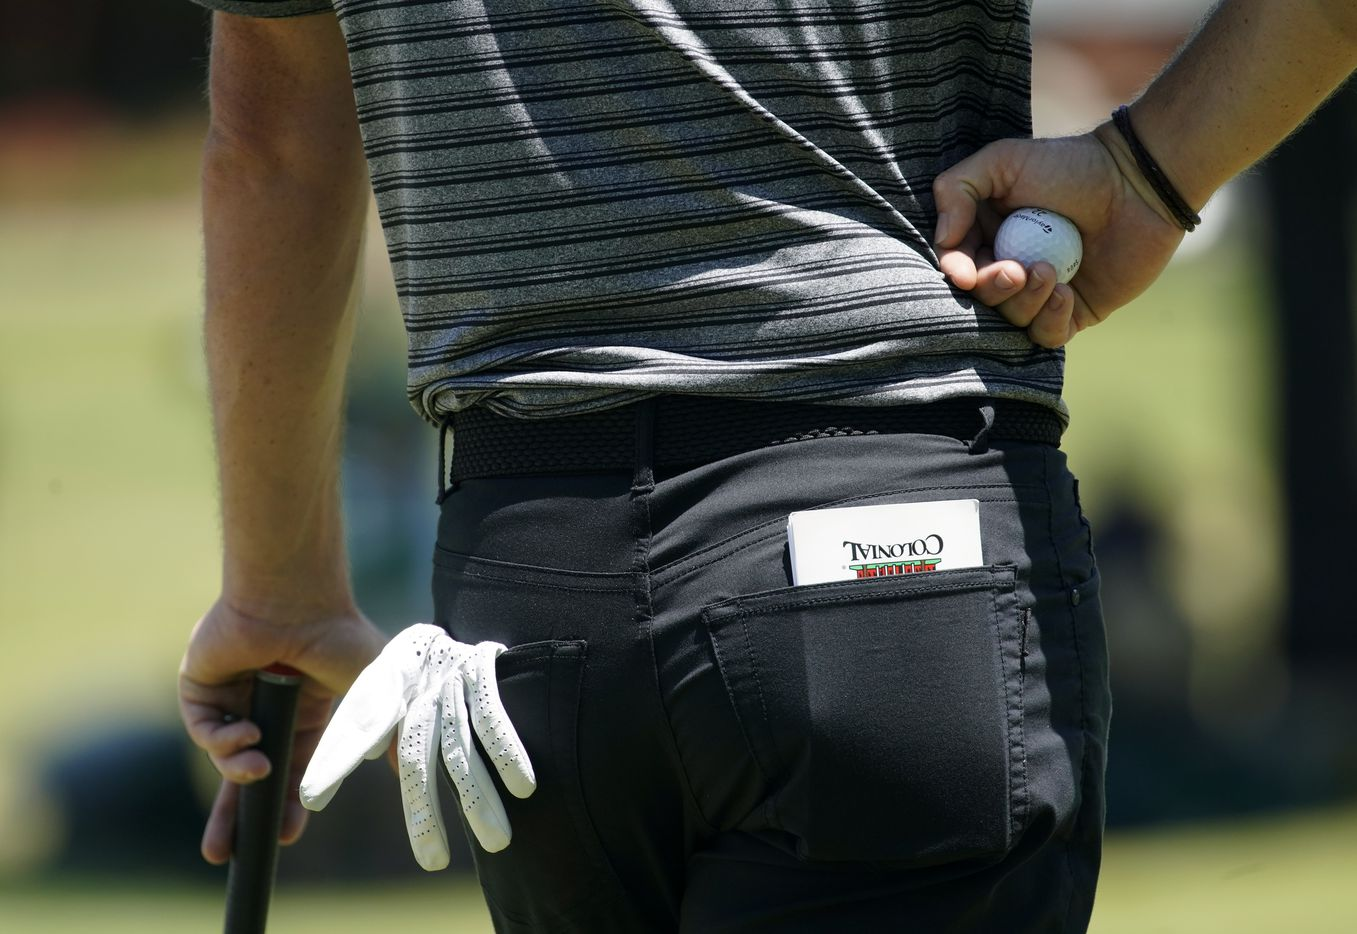 PGA Tour golfer Rory McIlroy kept his notes in a Colonial County Club note book as he waits to putt on No. 9 during the second round of the Charles Schwab Challenge at the Colonial Country Club in Fort Worth, Friday, June 12, 2020.  The Challenge is the first tour event since the COVID-19 pandemic began. (Tom Fox/The Dallas Morning News)